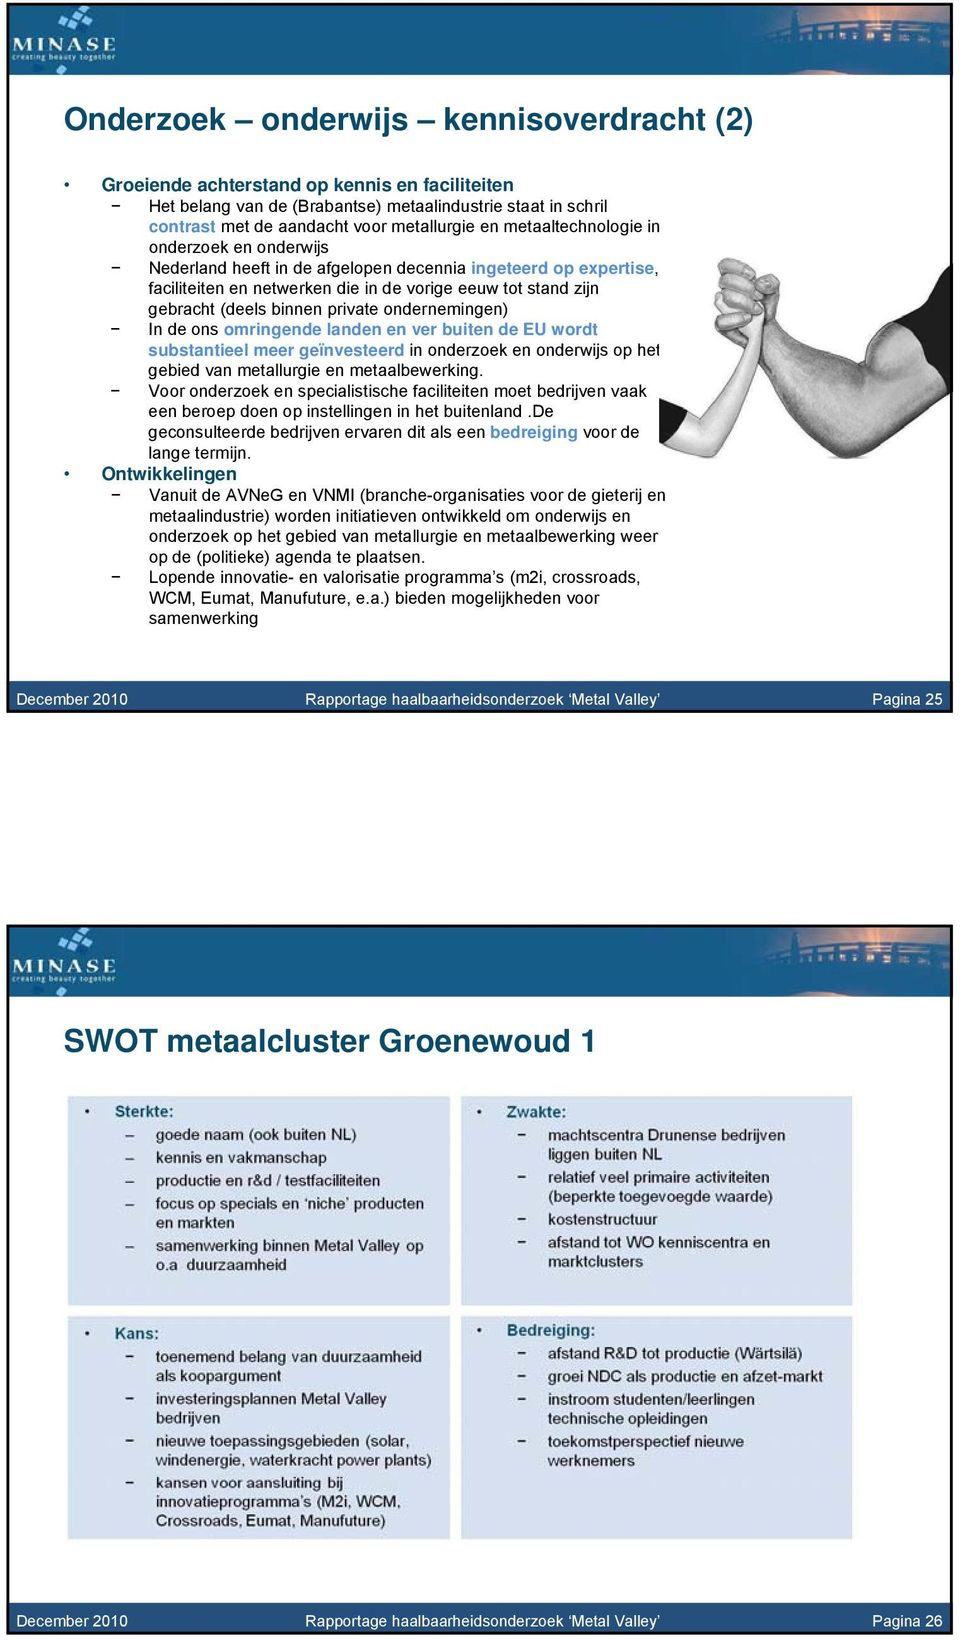 wartsila swot Find free swot analysis for wartsila and read swot analysis for over 40,000+ companies and industries detailed reports with strength, weaknesses, opportunities.